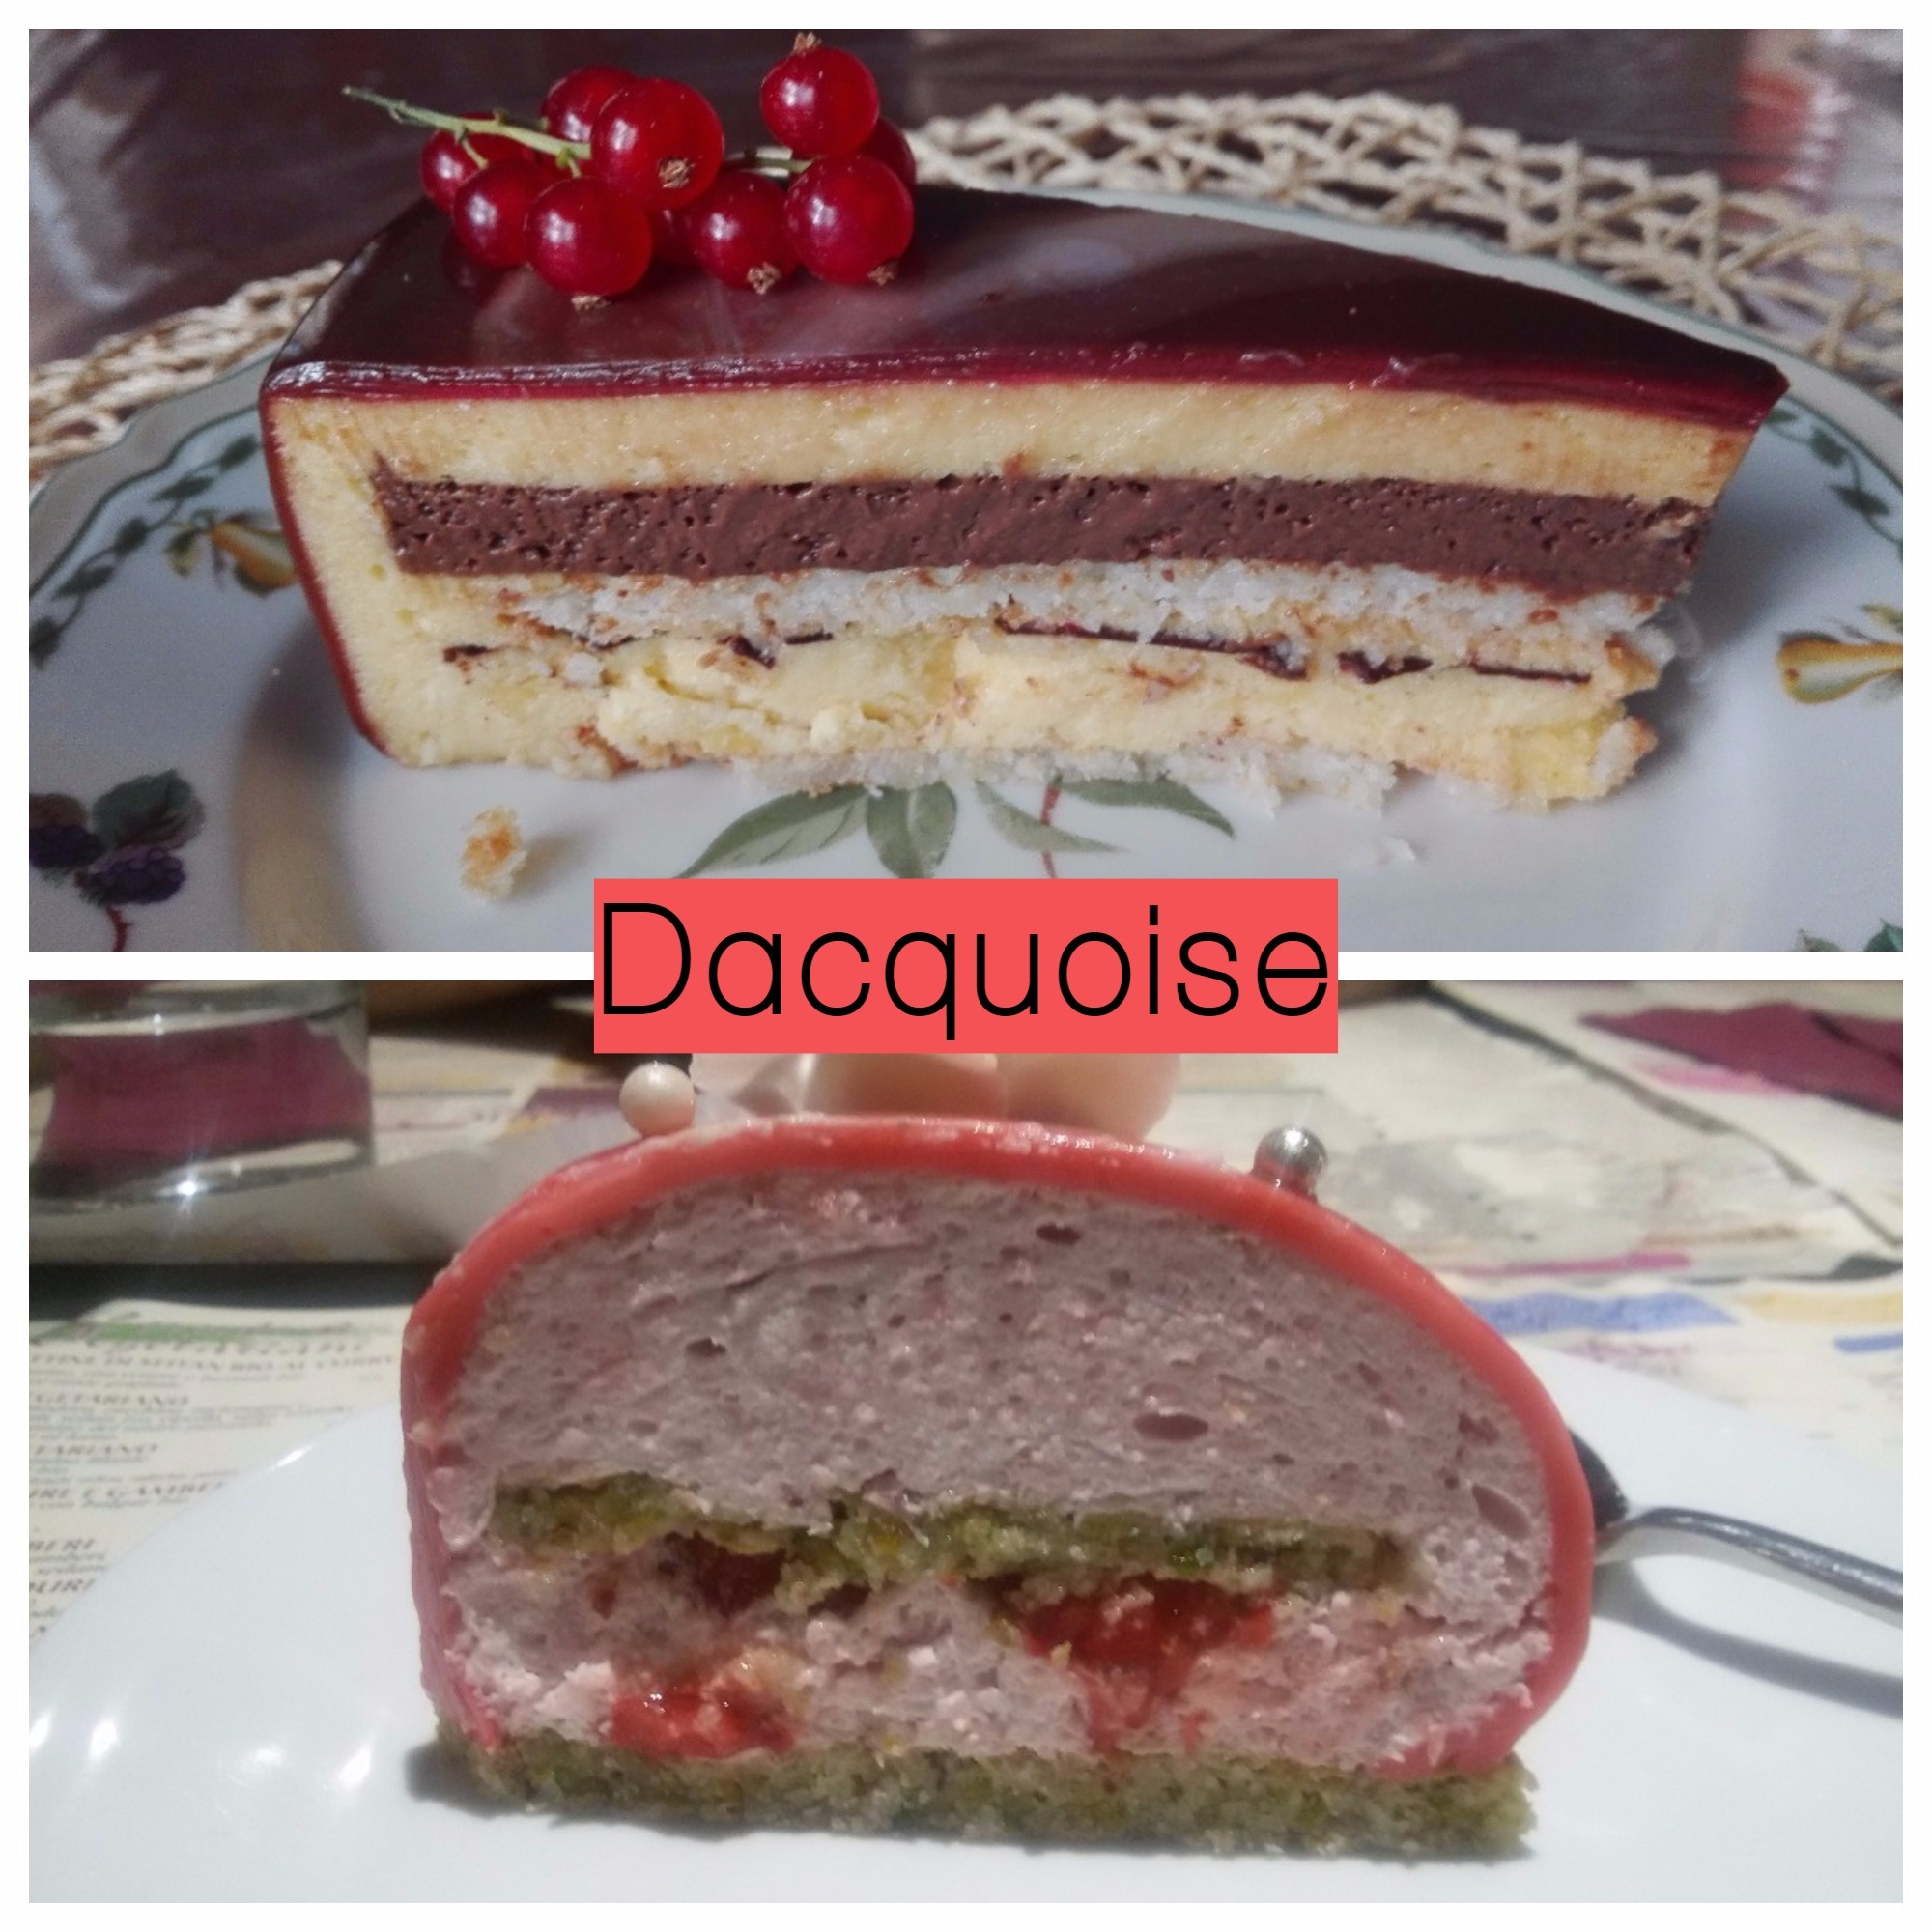 dacquoise